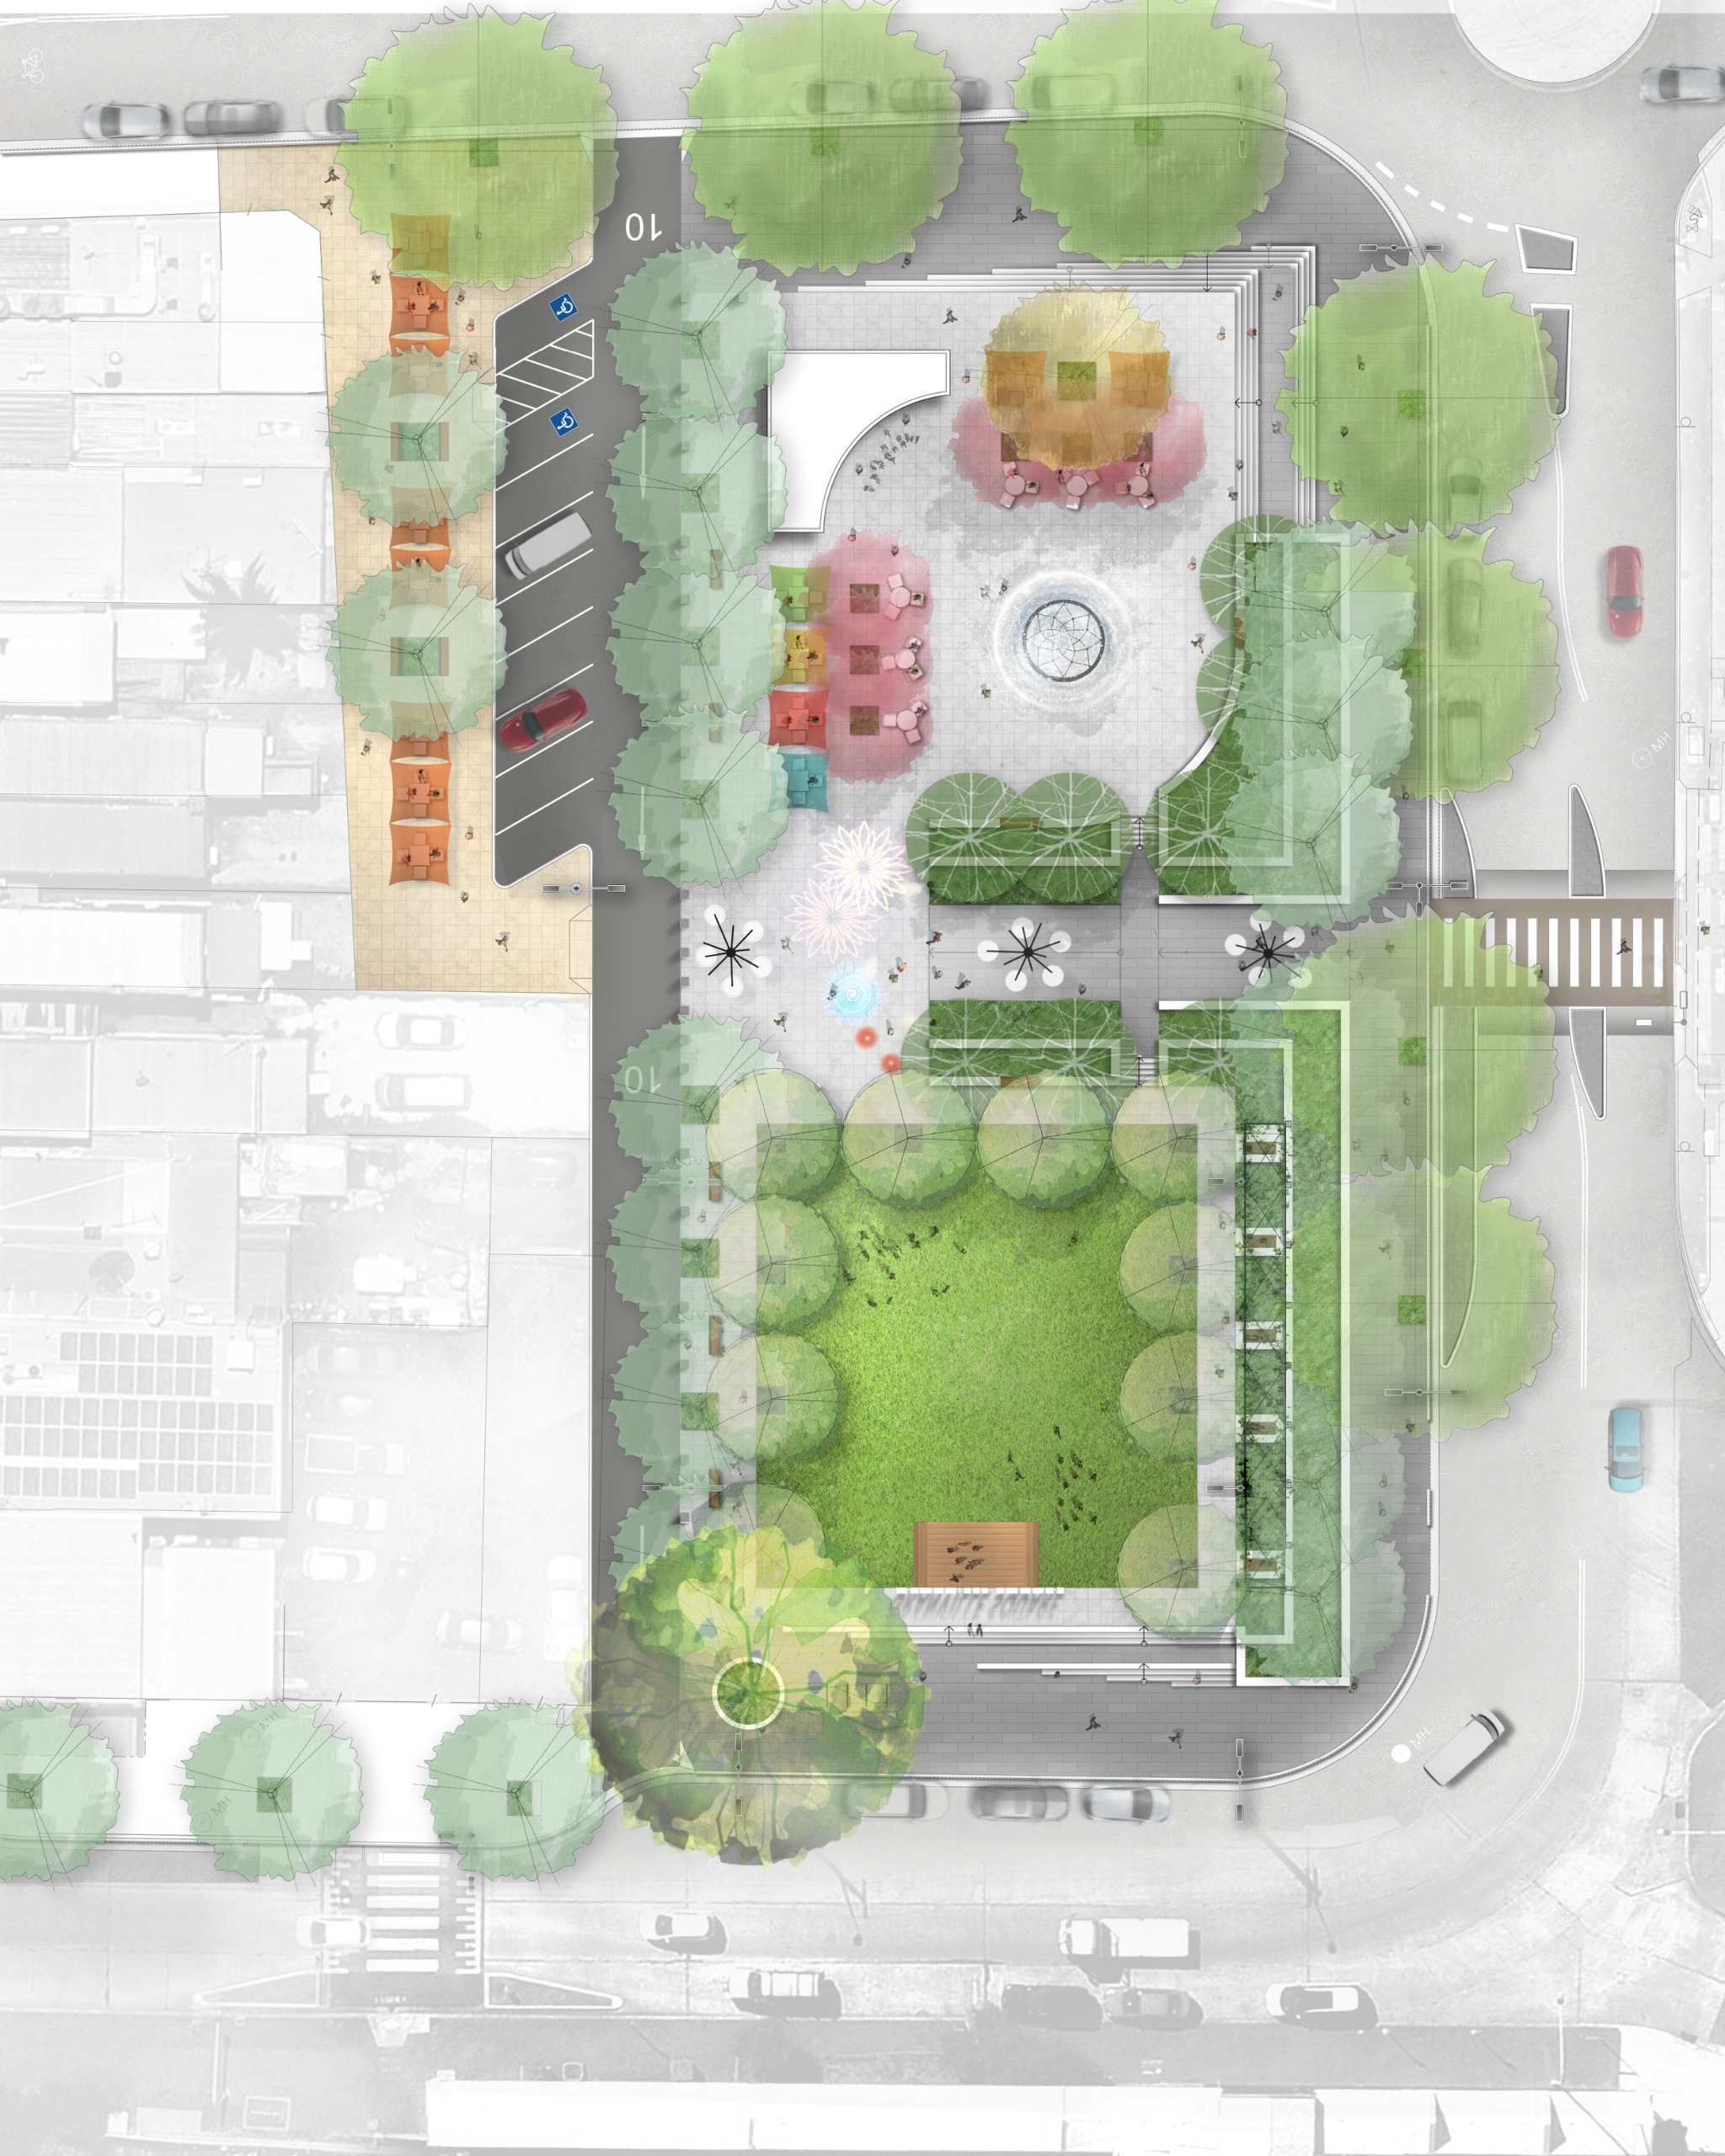 After: Illustration of the future site concept plan whichs shows the removal of the commuter car park, and instead a lush green open space for the community to sit and children to play. New tree plantings, accessible pathways and dining areas fr picnics and acti